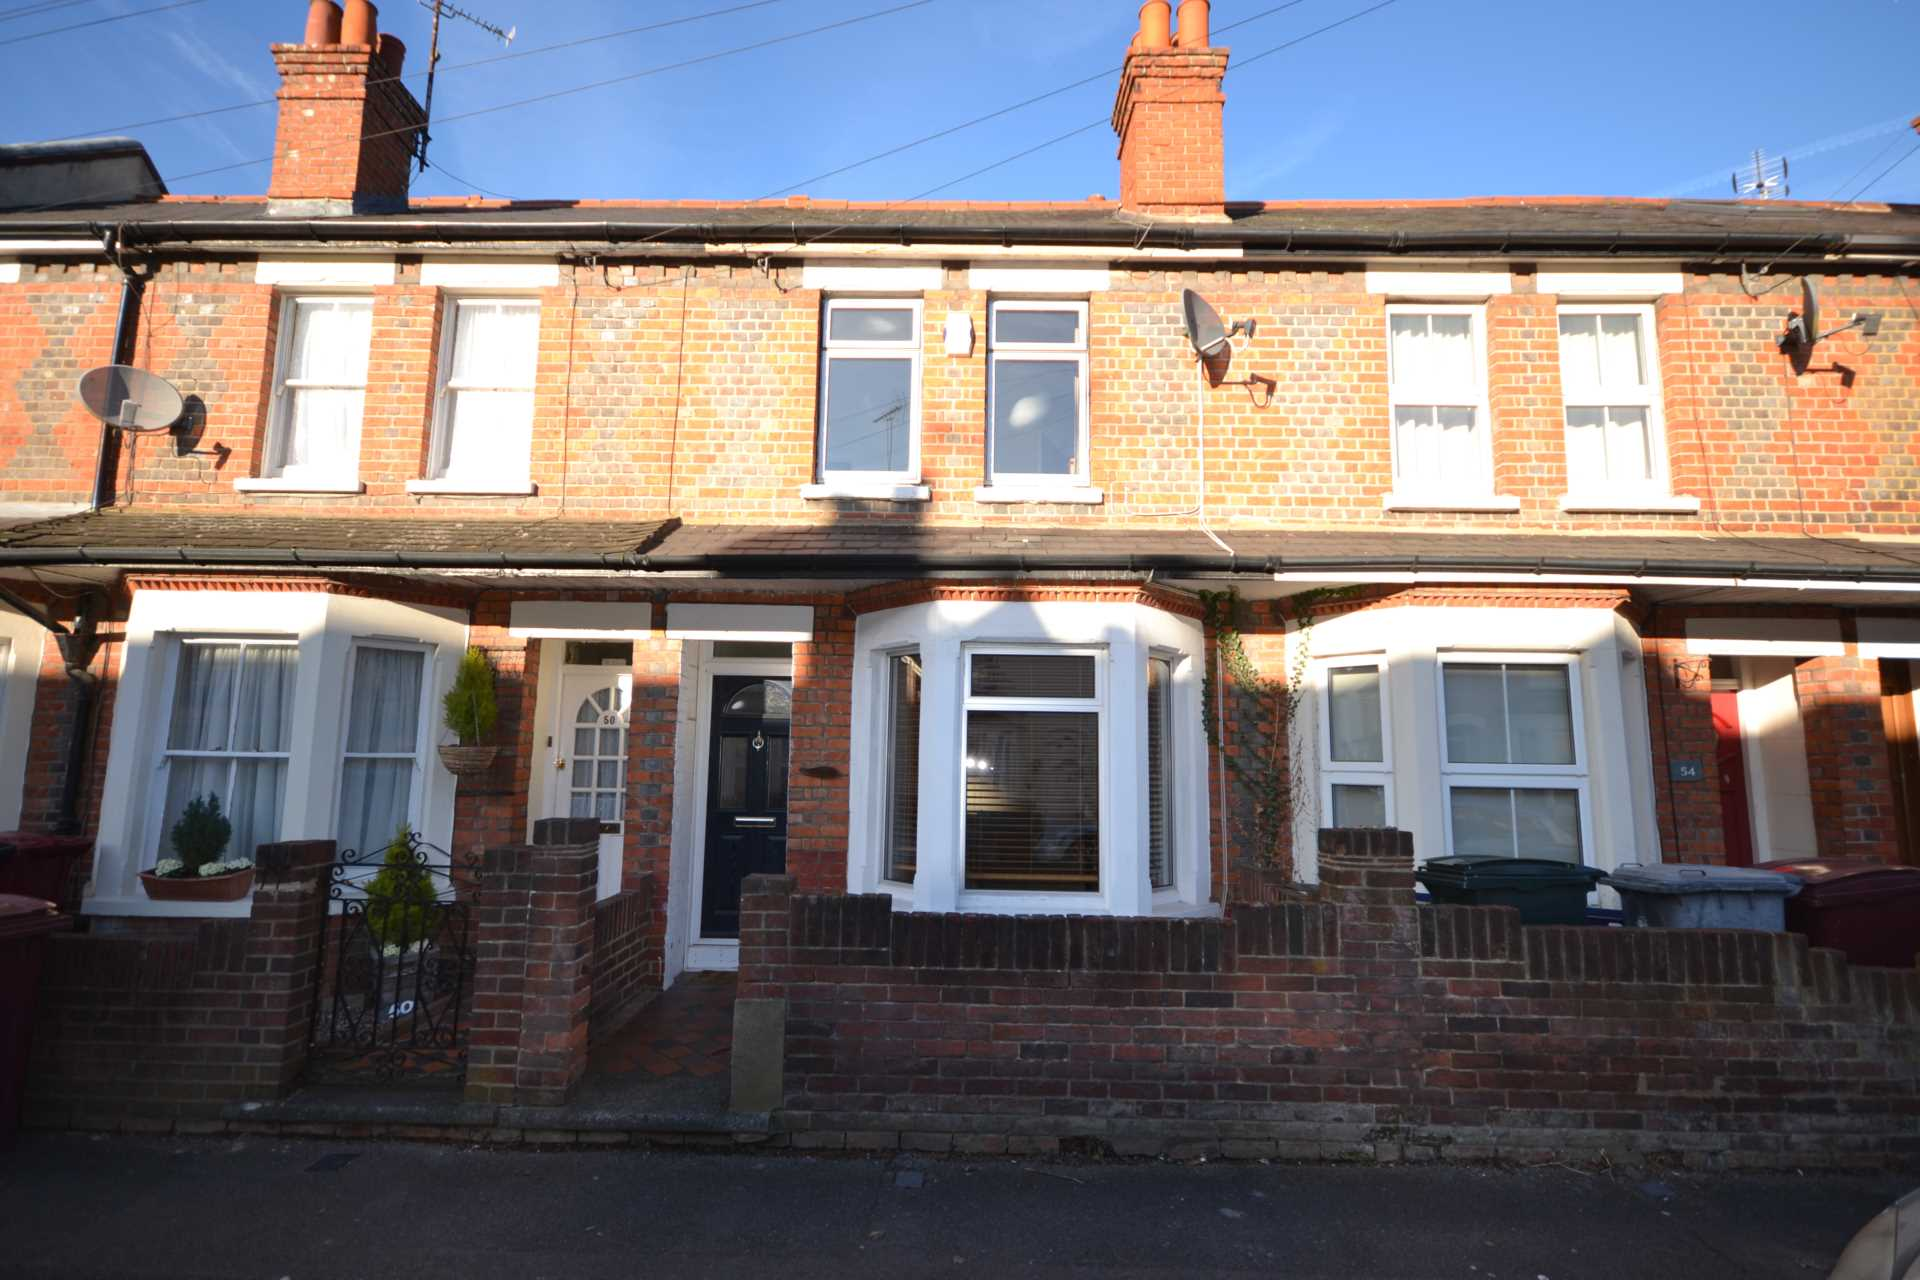 3 Bedroom Terraced House For Sale Queens Road Reading Rg4 8dl